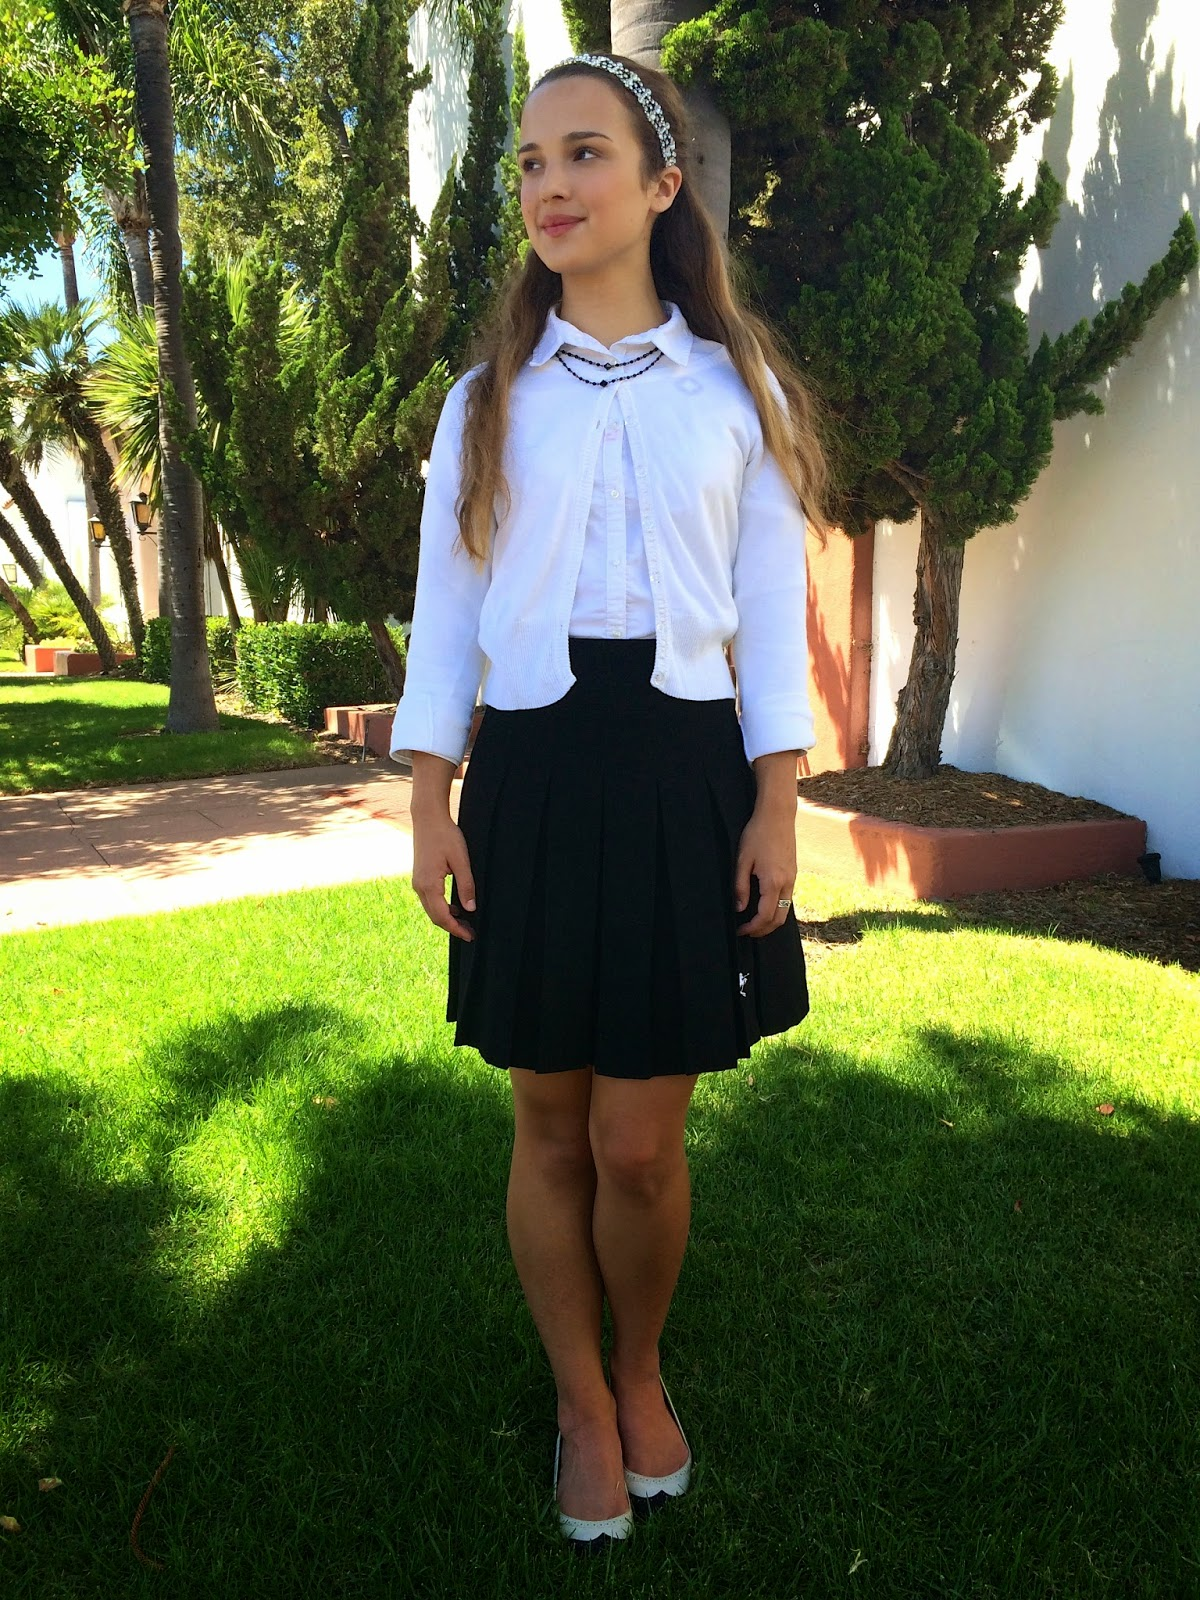 Red Ruby How To Style Your Uniform Inspired By Blair